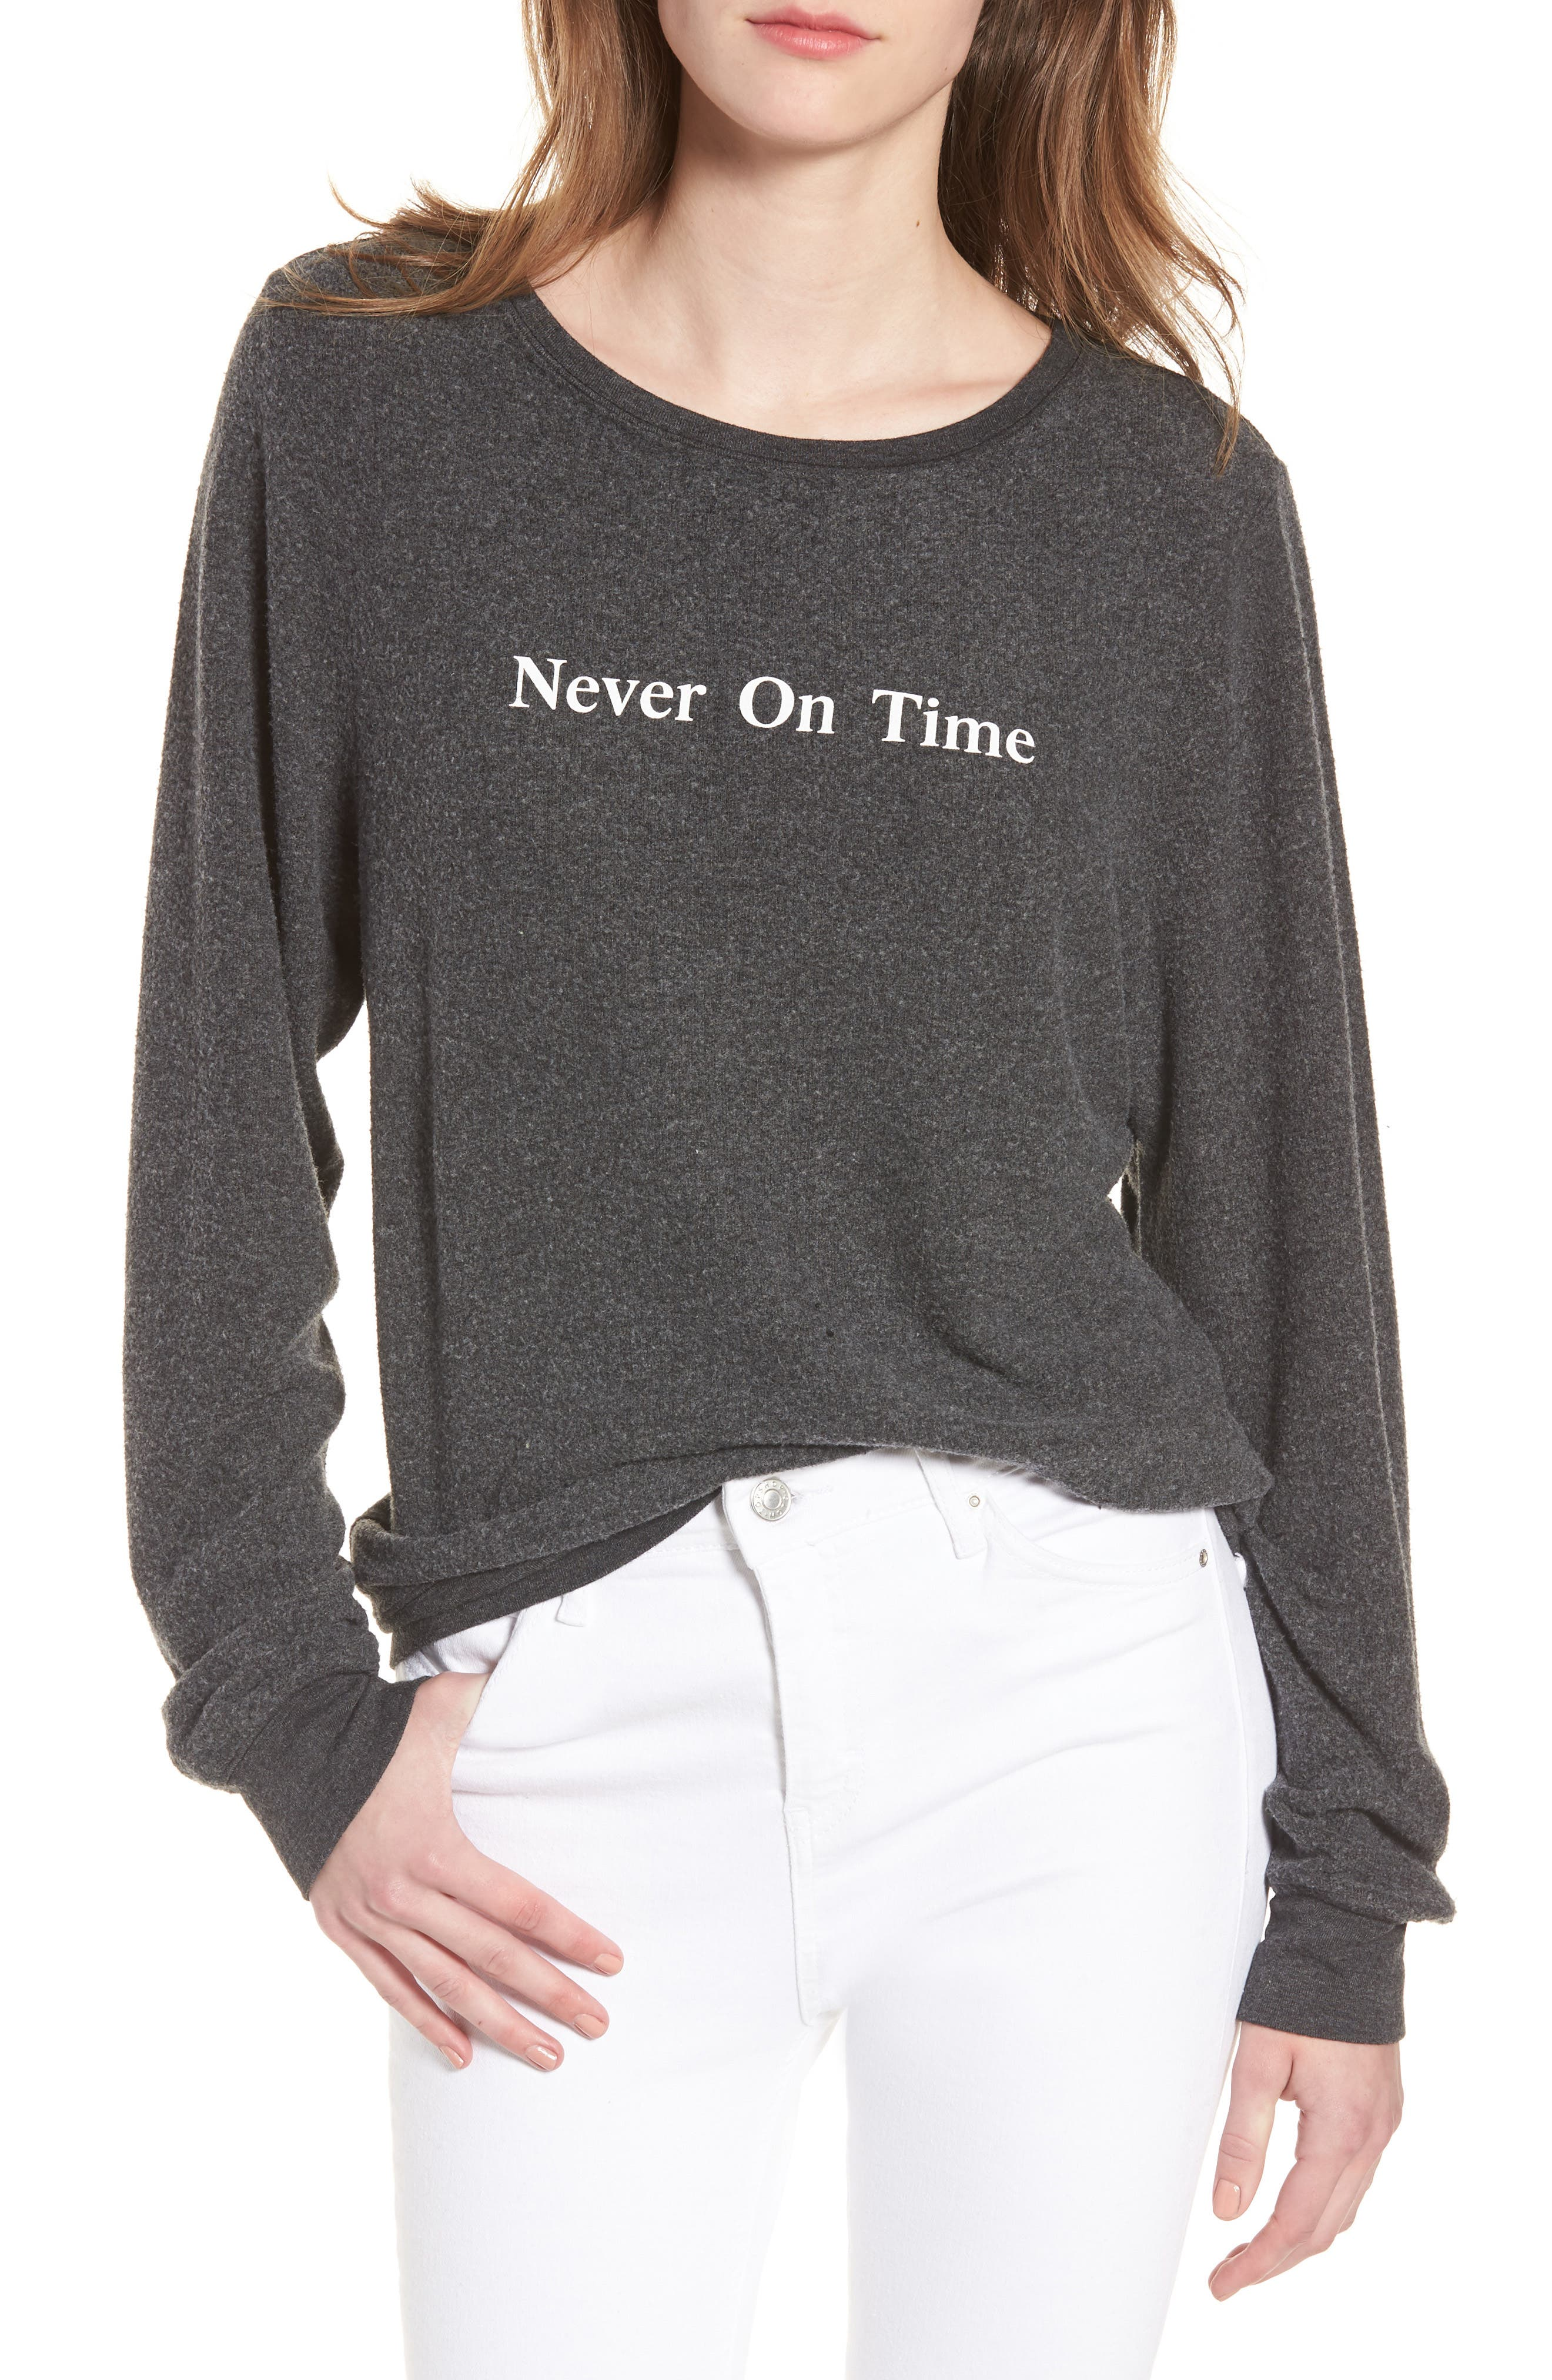 Never on Time Baggy Beach Jumper Pullover,                         Main,                         color, 001